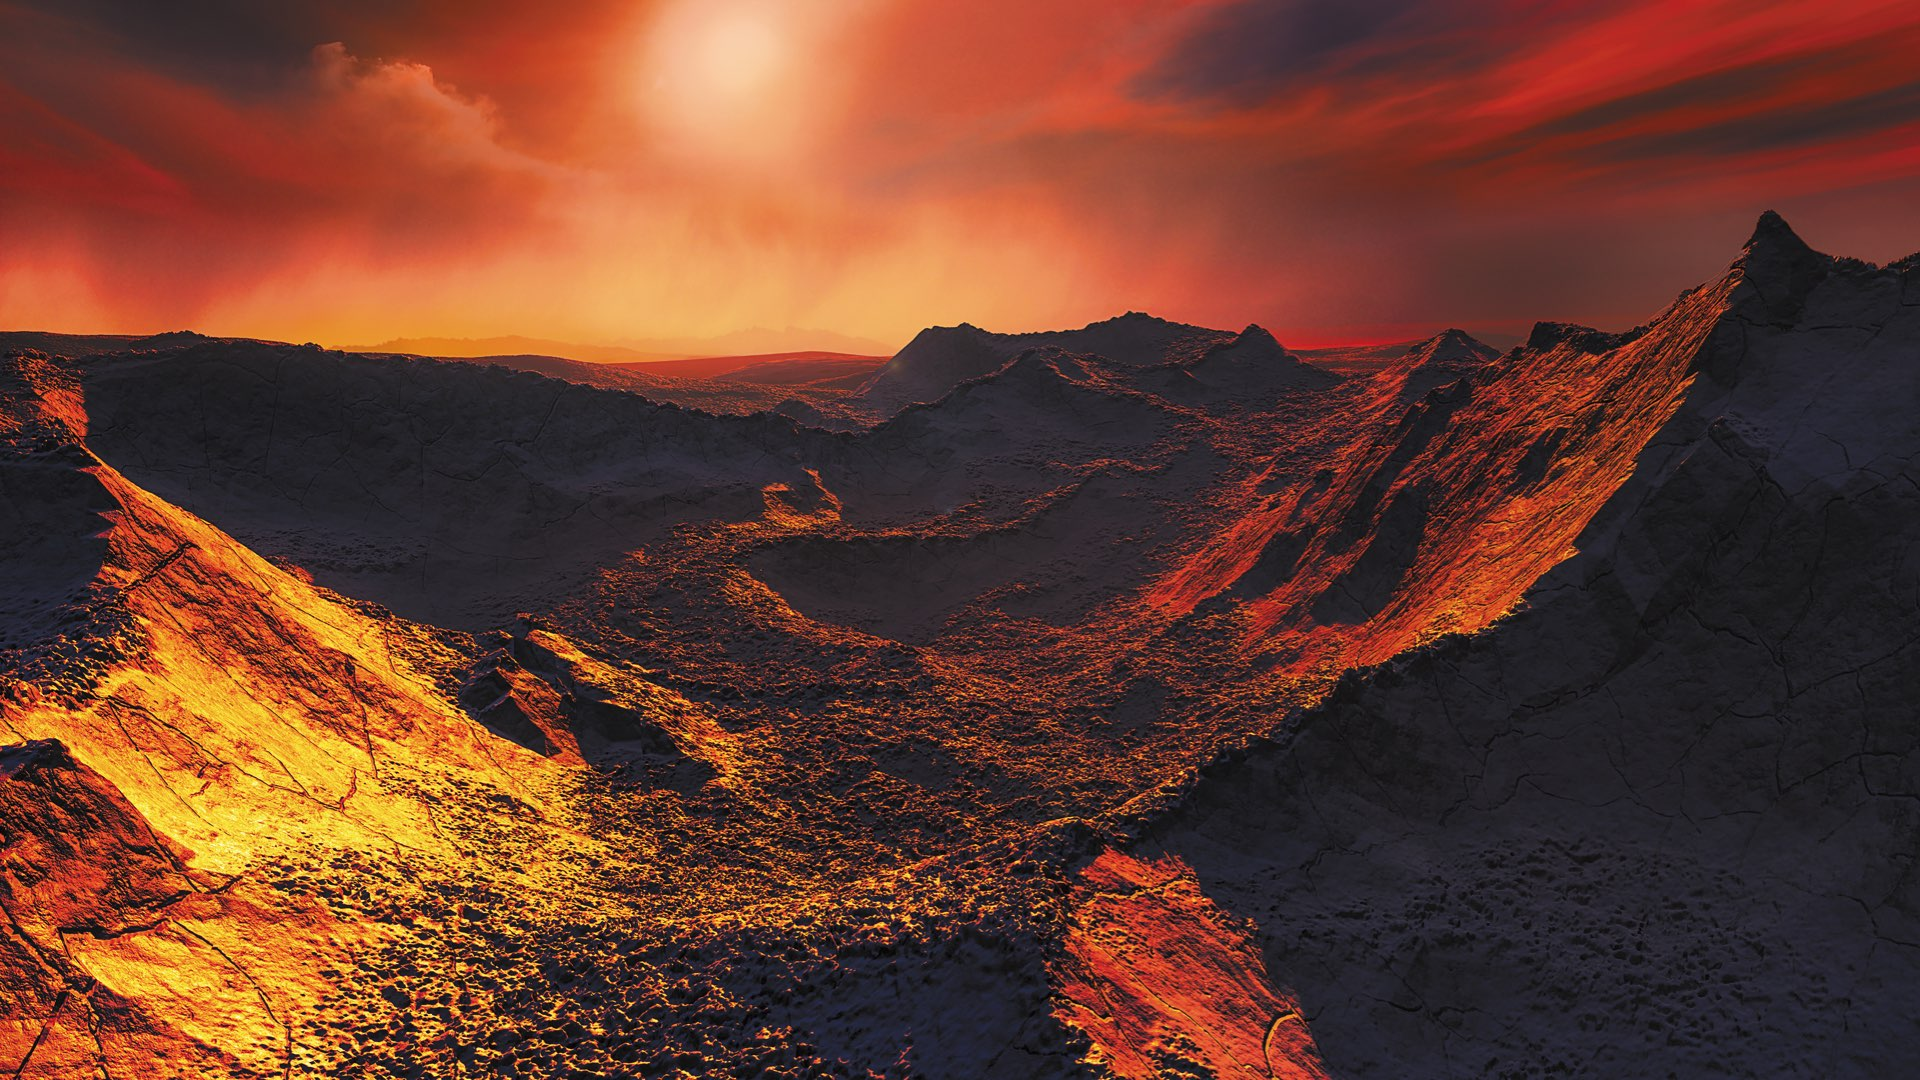 Artist's impression of Barnard b, a rocky, mountainous landscape of with dusty red ridges under a pink cloudy sky